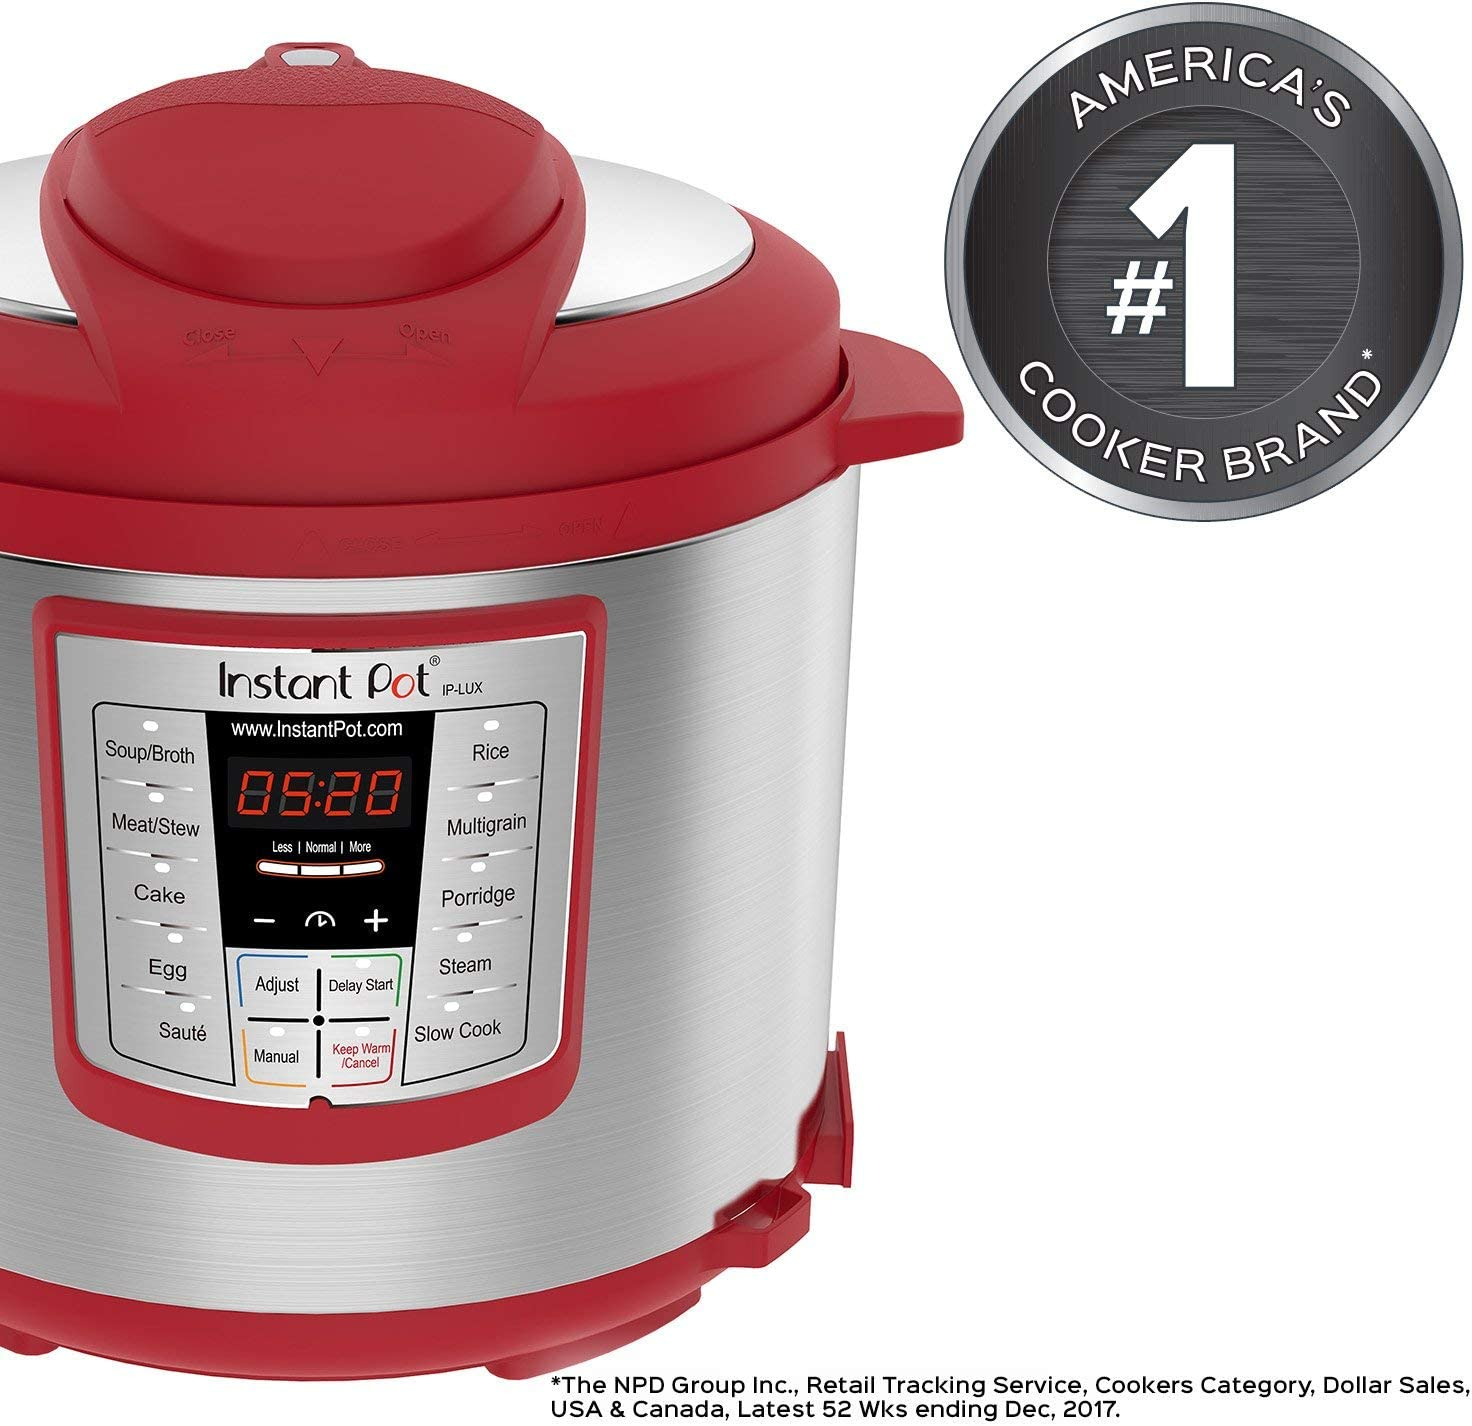 Instant Pot Lux 6 Qt Red 6-in-1 Muti-Use Programmable Pressure Cooker, Slow Cooker, Rice Cooker, Sauté, Steamer, and Warmer (Renewed)